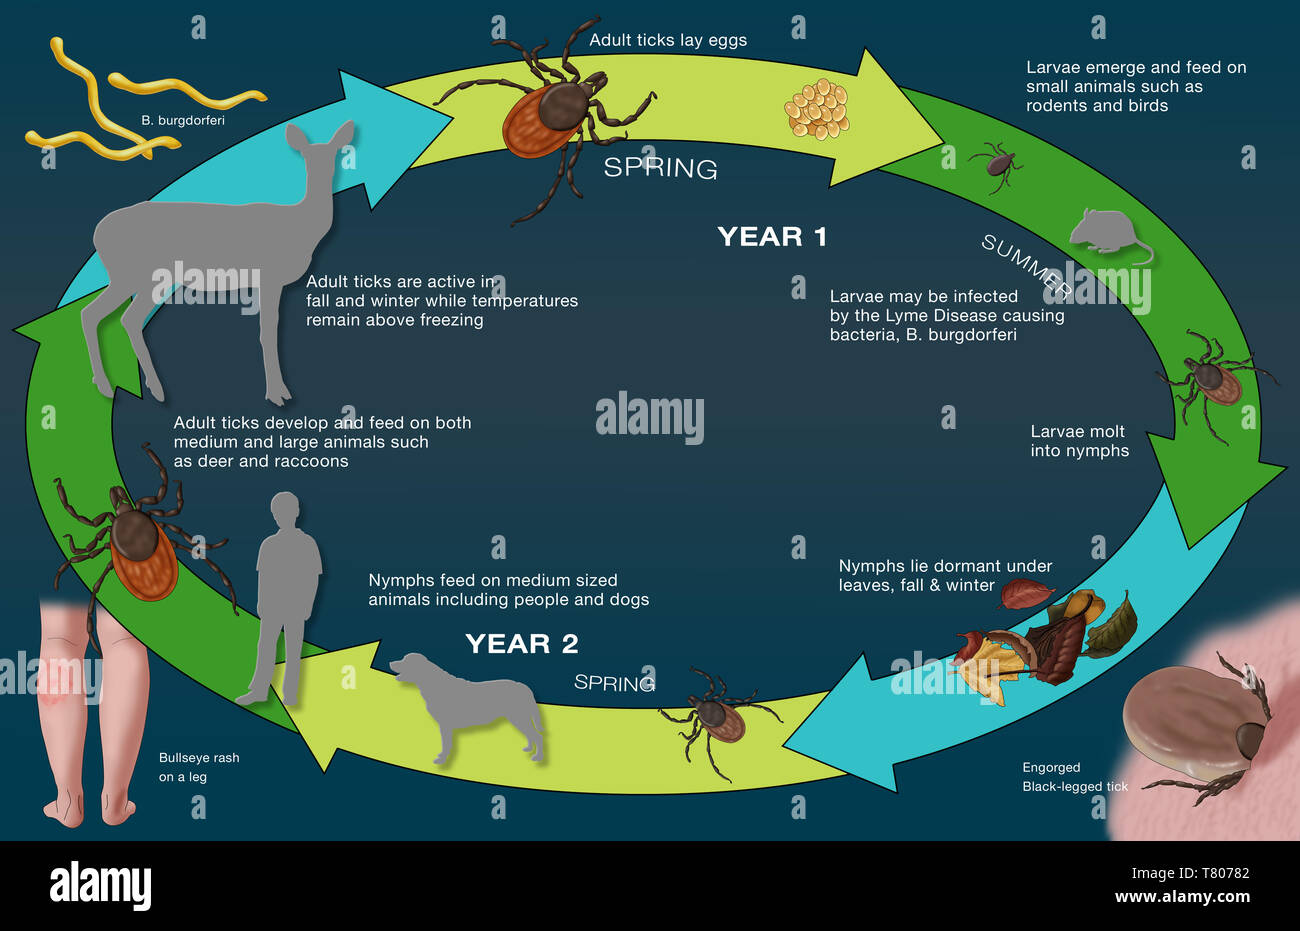 Life Cycle of the Black-legged Tick and Lyme, Illustration - Stock Image